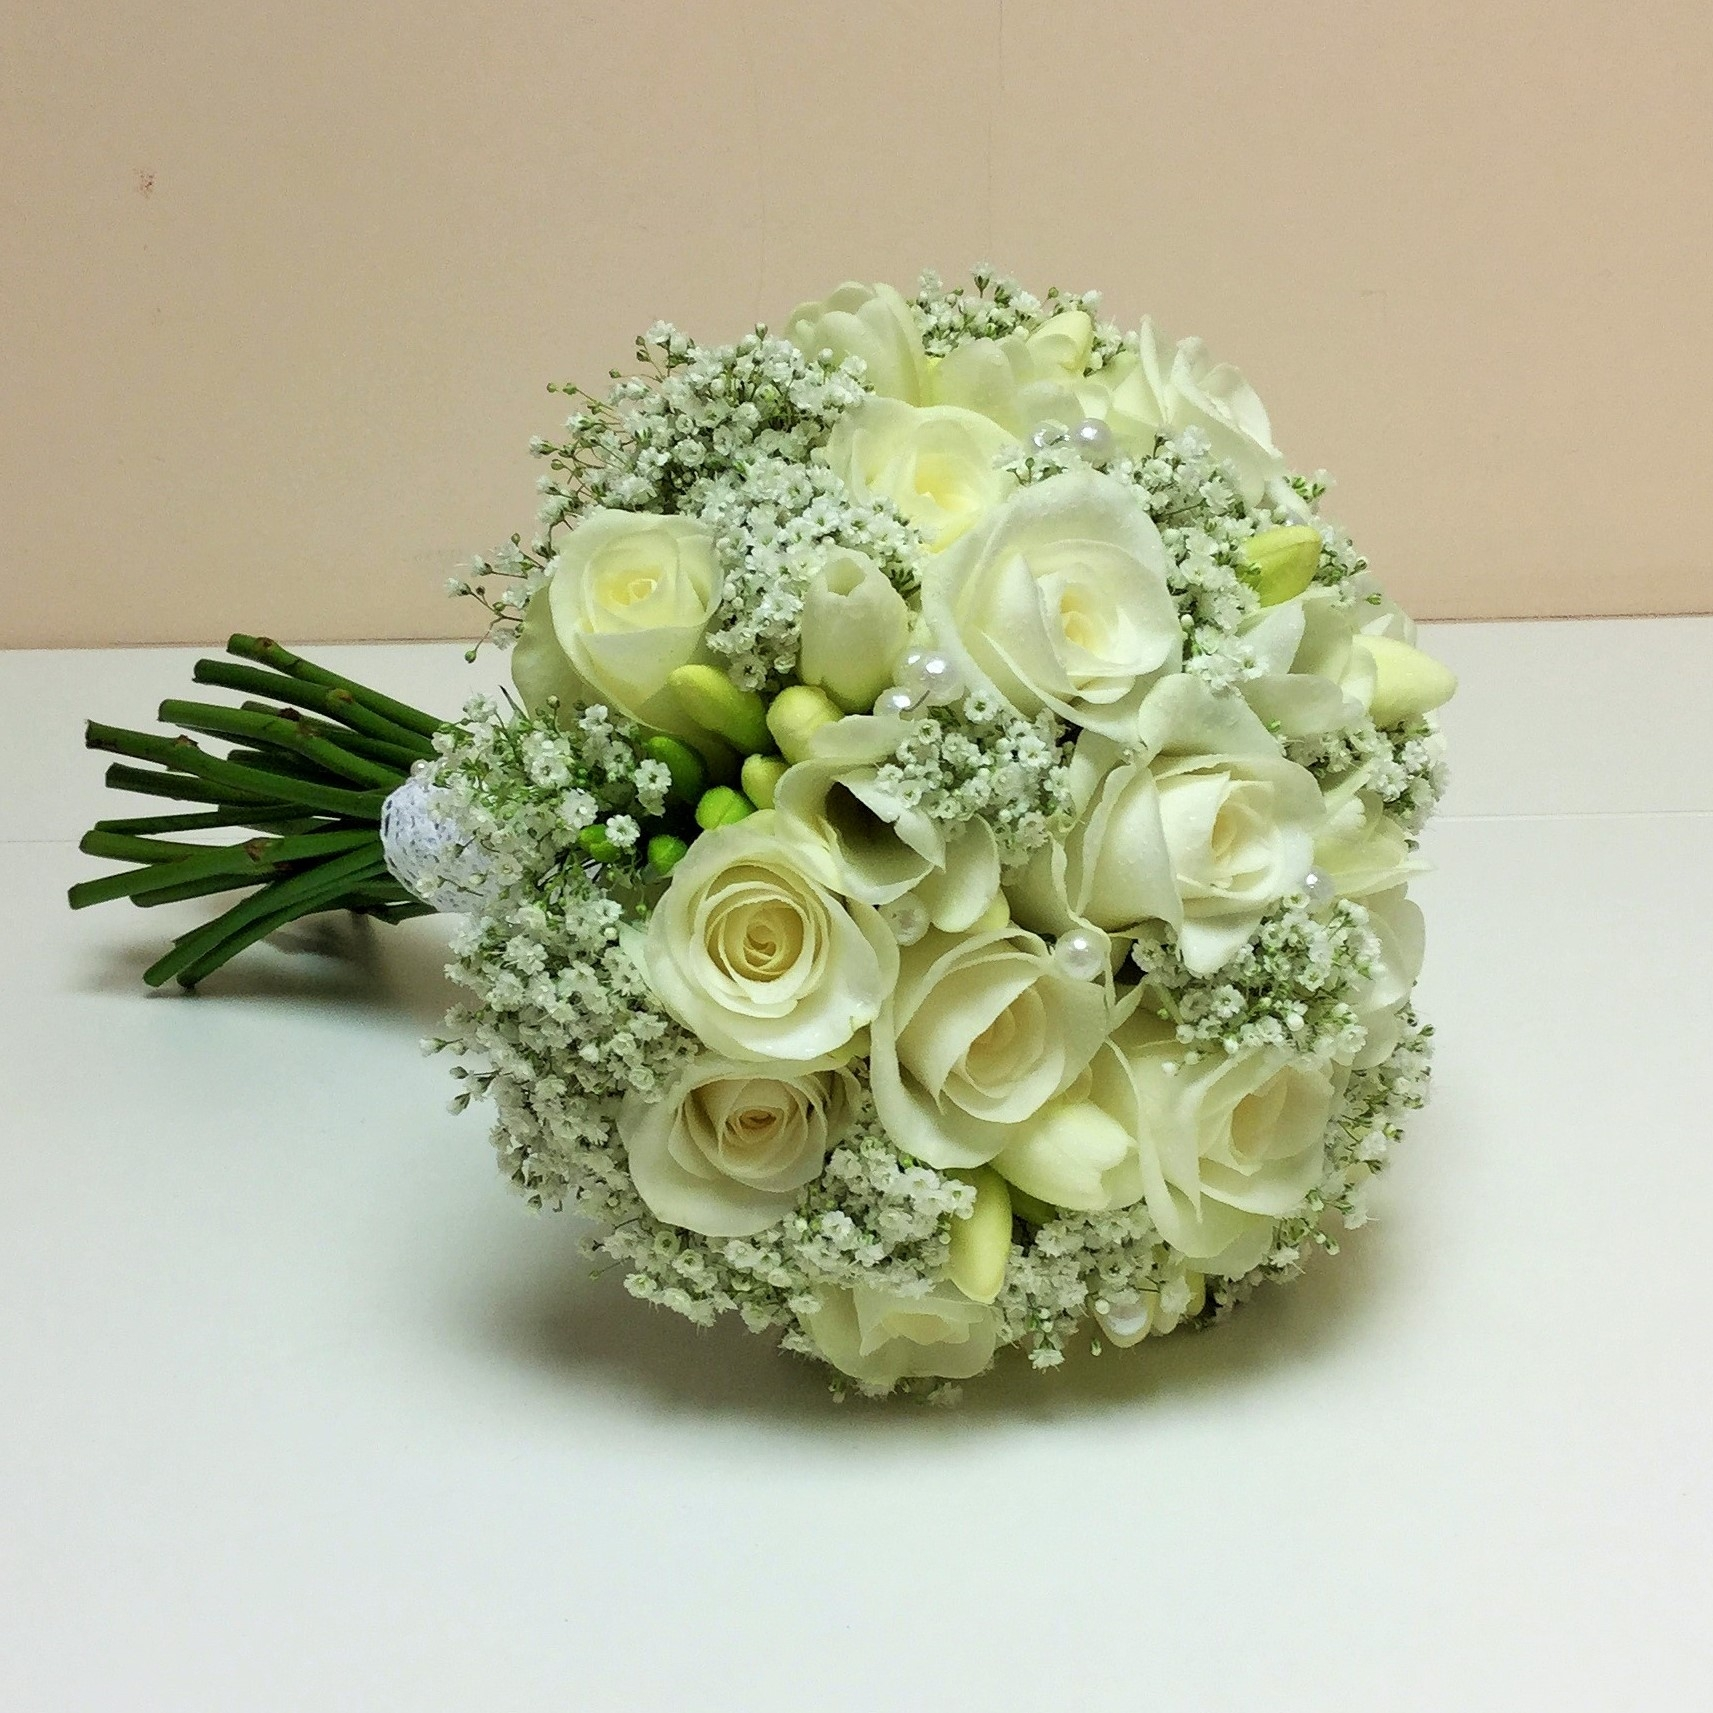 flower for wedding bouquets photo - 1